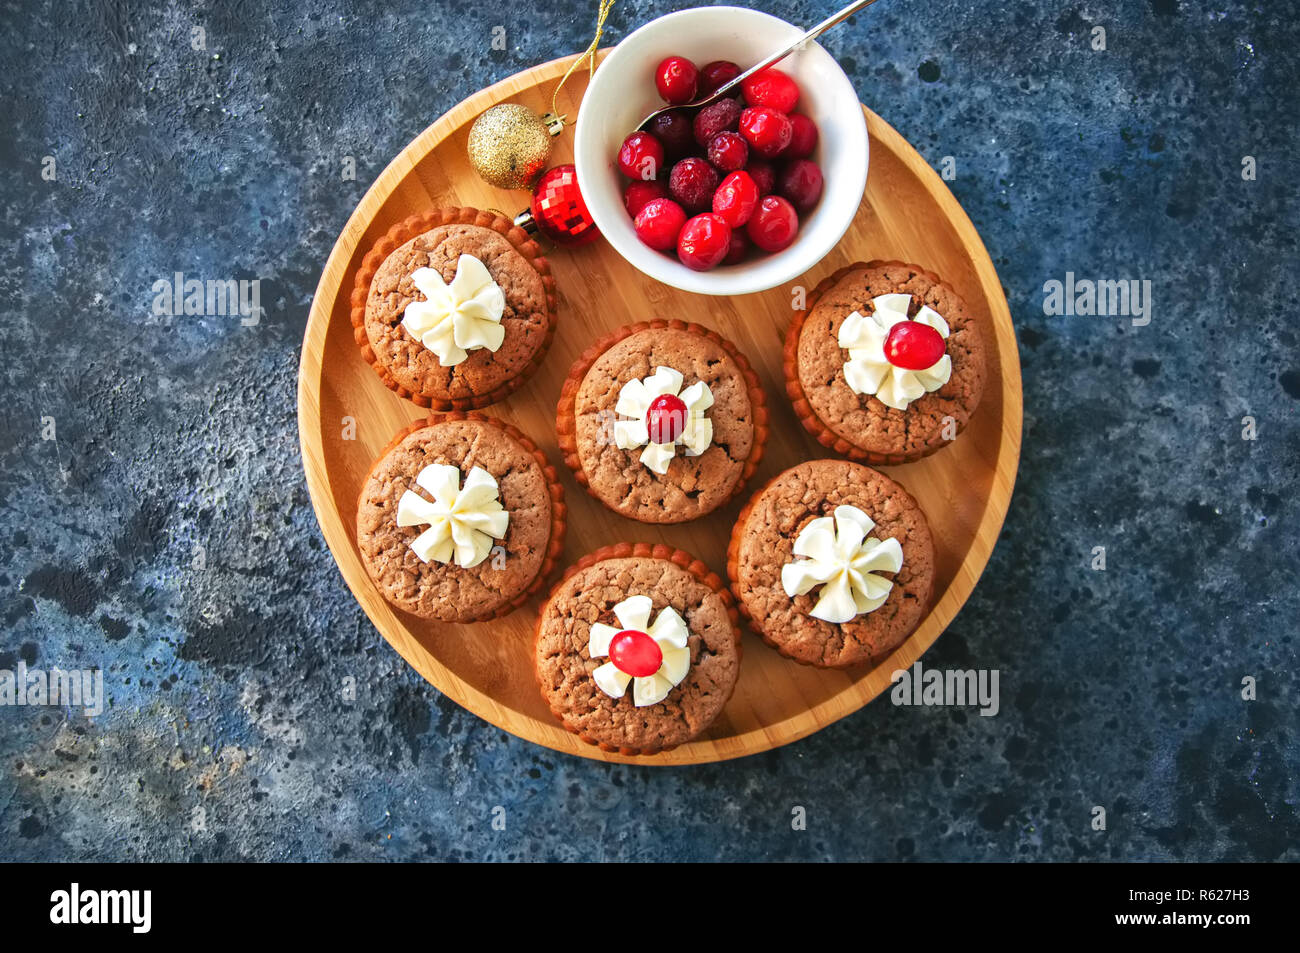 Brownie mins pies in a plate on a blue background. Festive desse - Stock Image